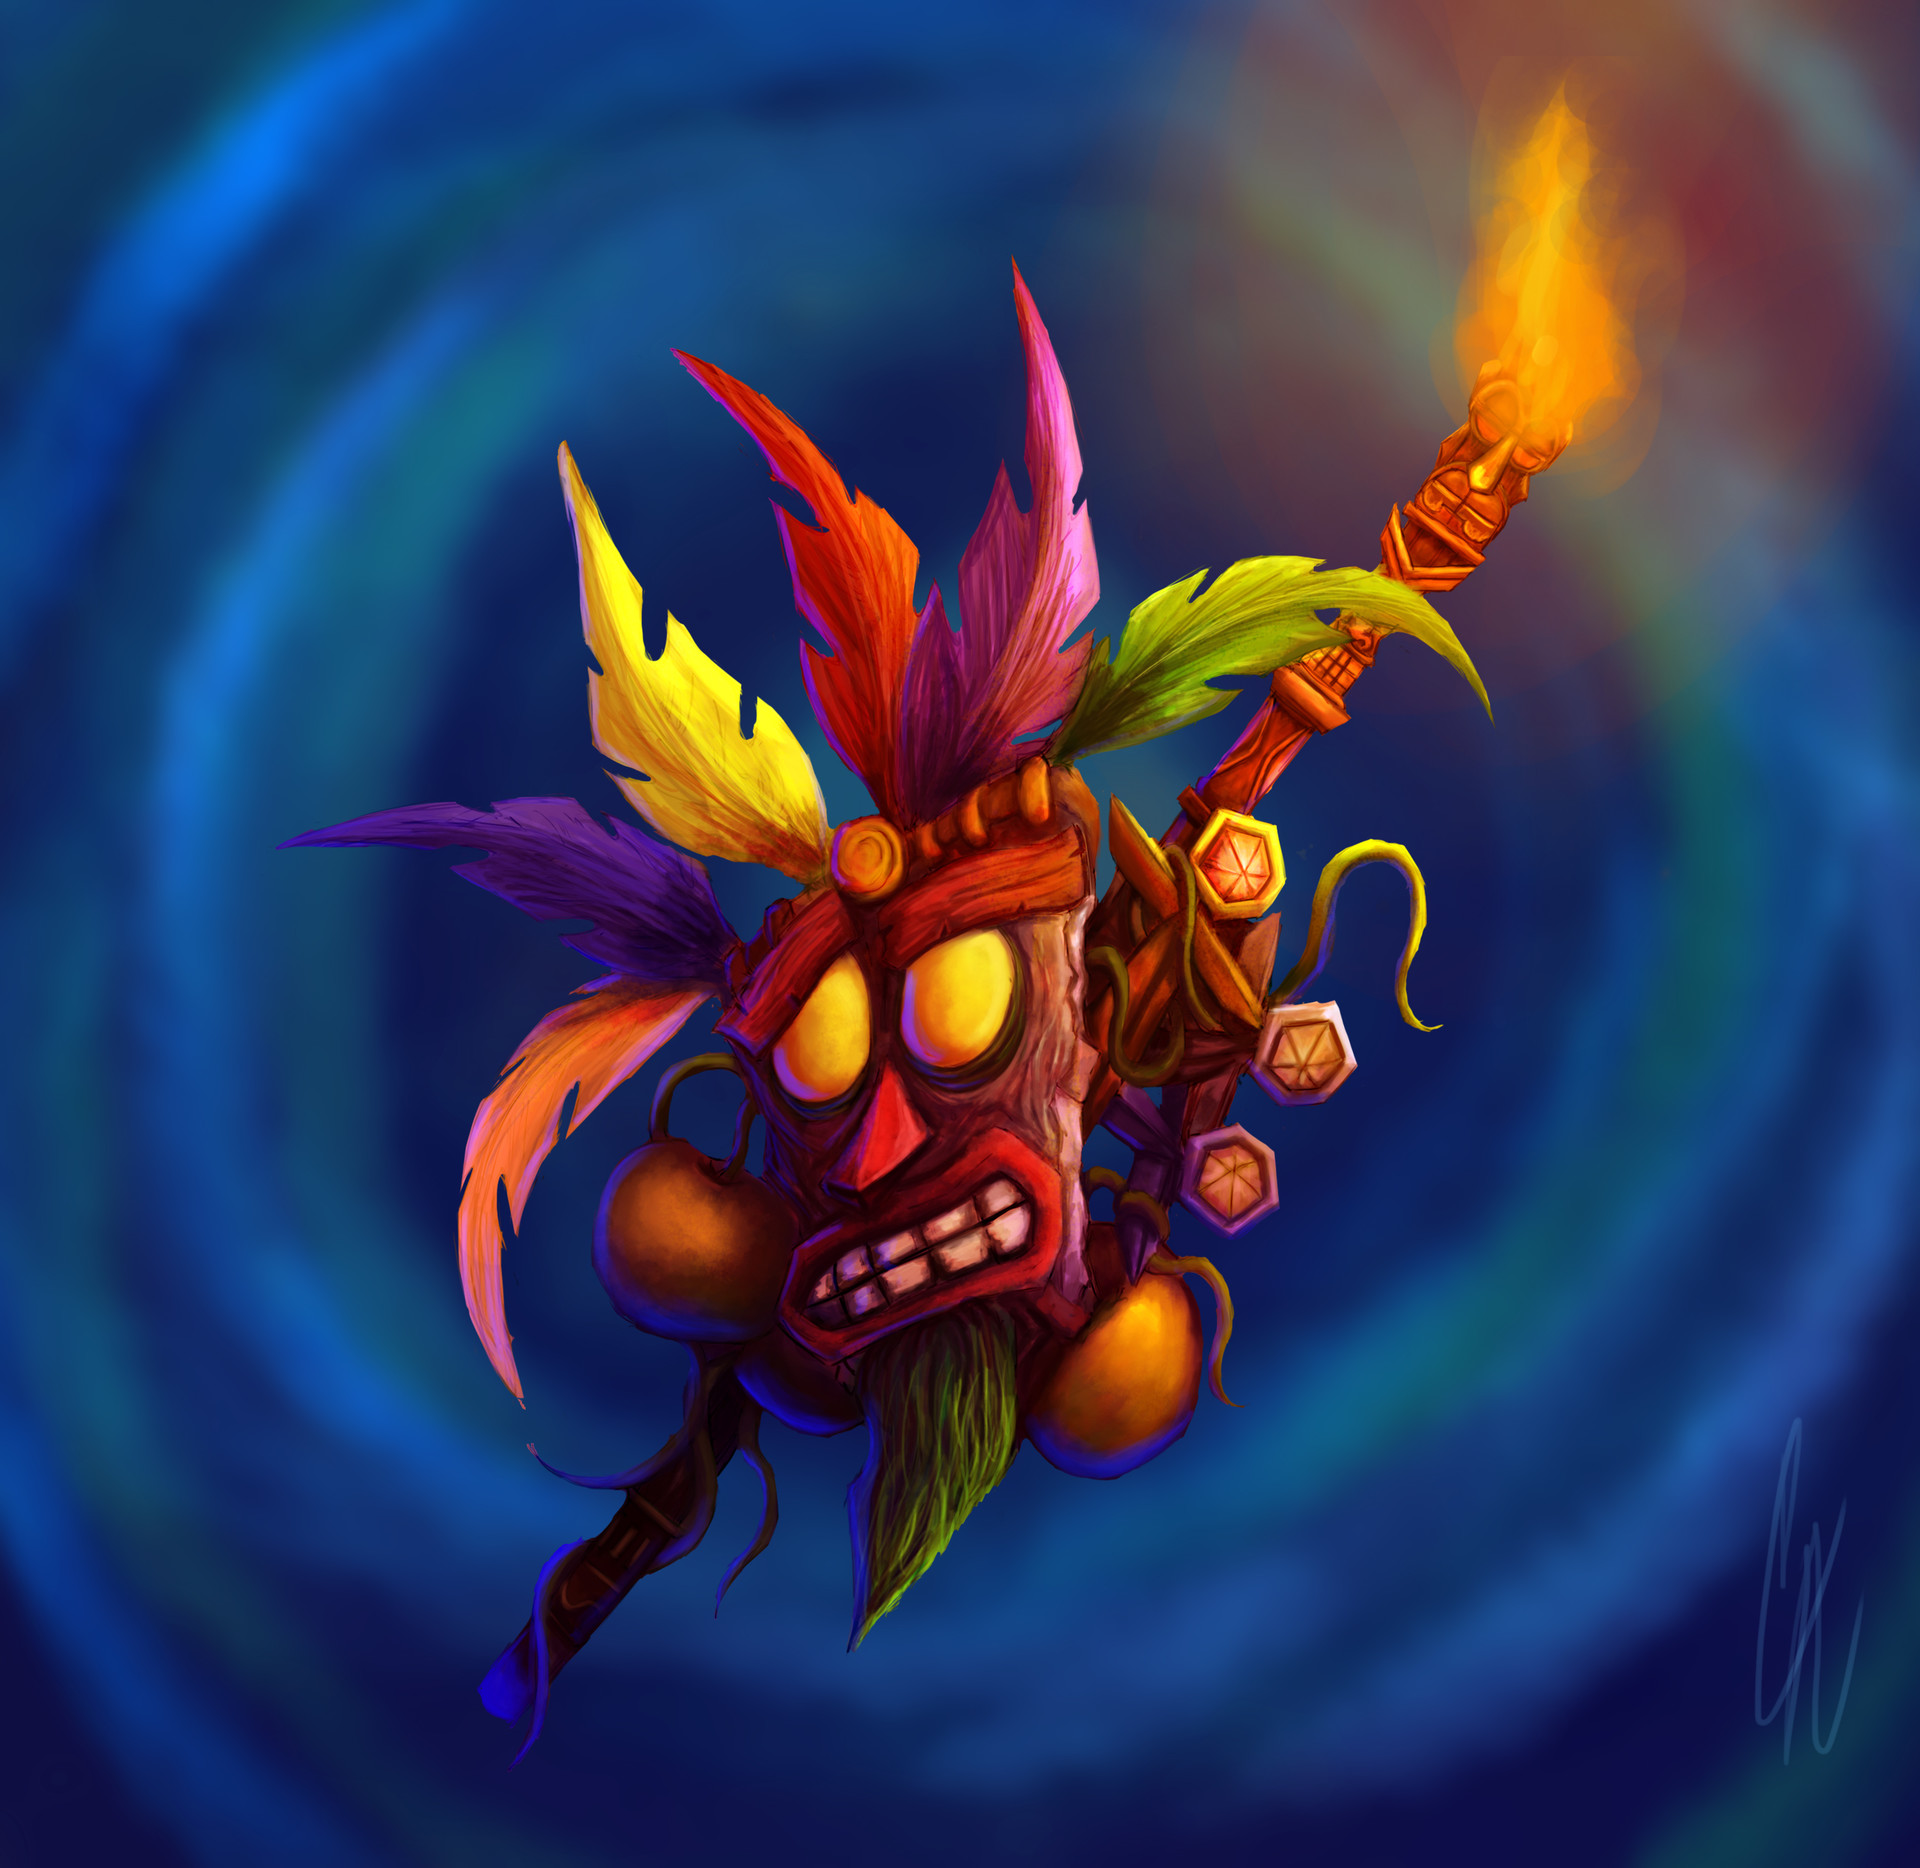 christian ardila crash bandicoot characters